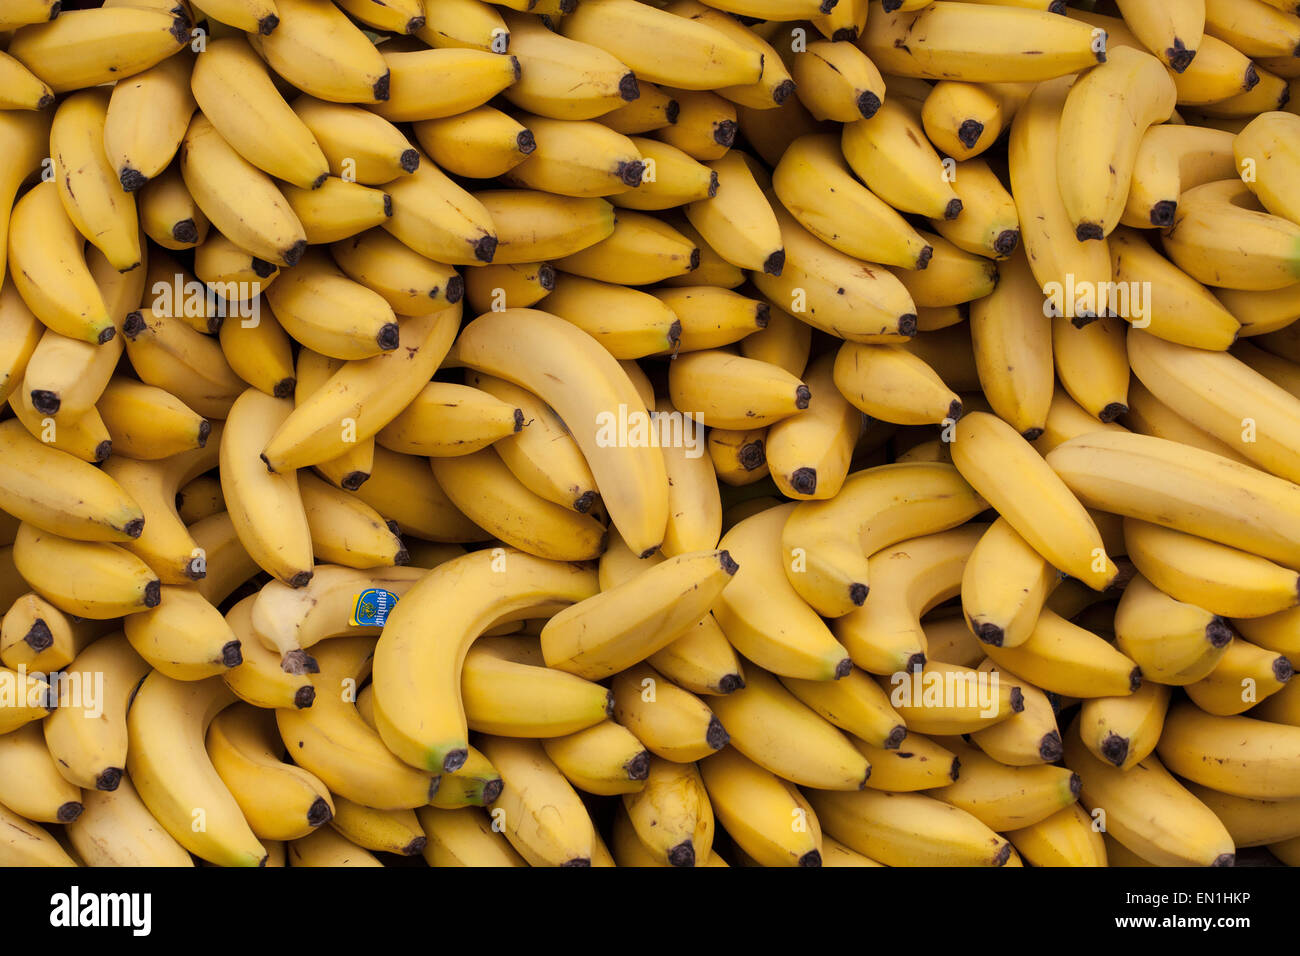 Nashville, Tennessee, USA. 25th Apr, 2015. Stacks of bananas await runners at the finish line as they complete the - Stock Image